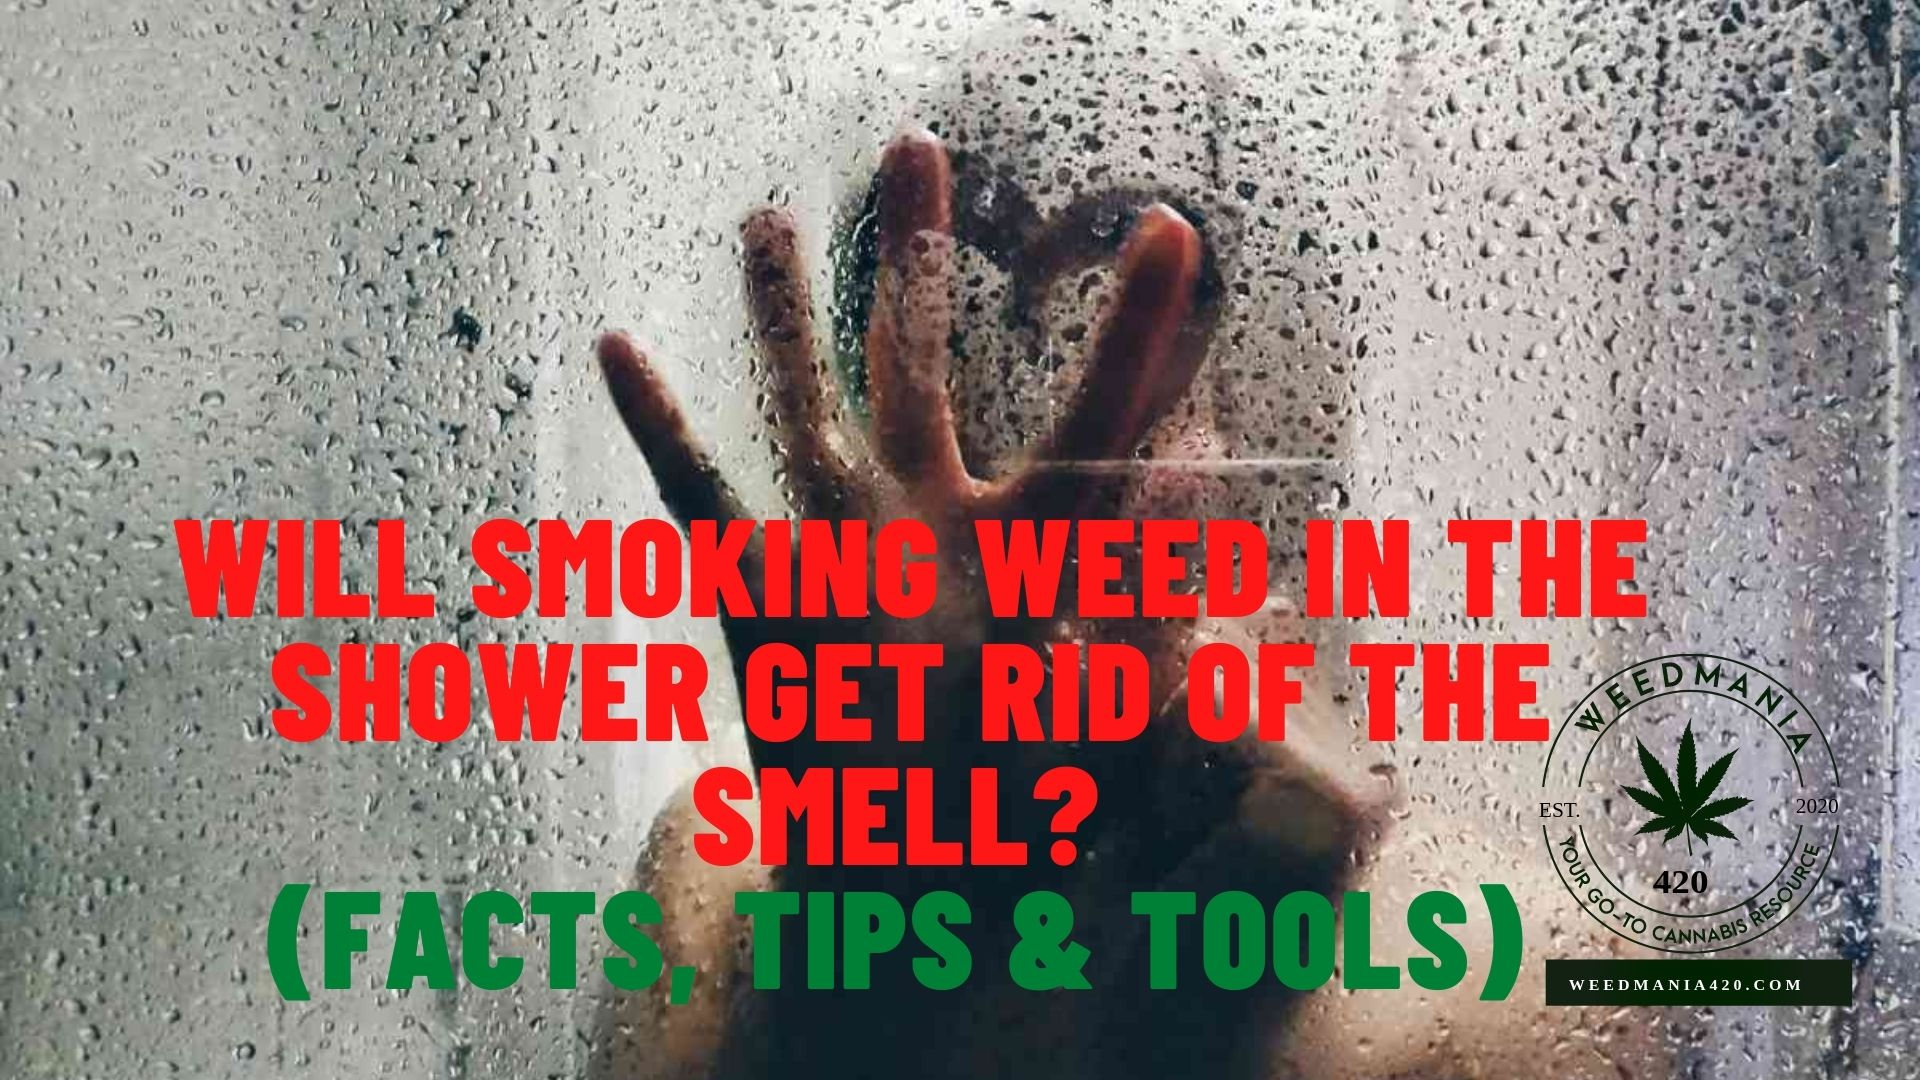 Will Smoking Weed In The Shower Get Rid Of The Smell?